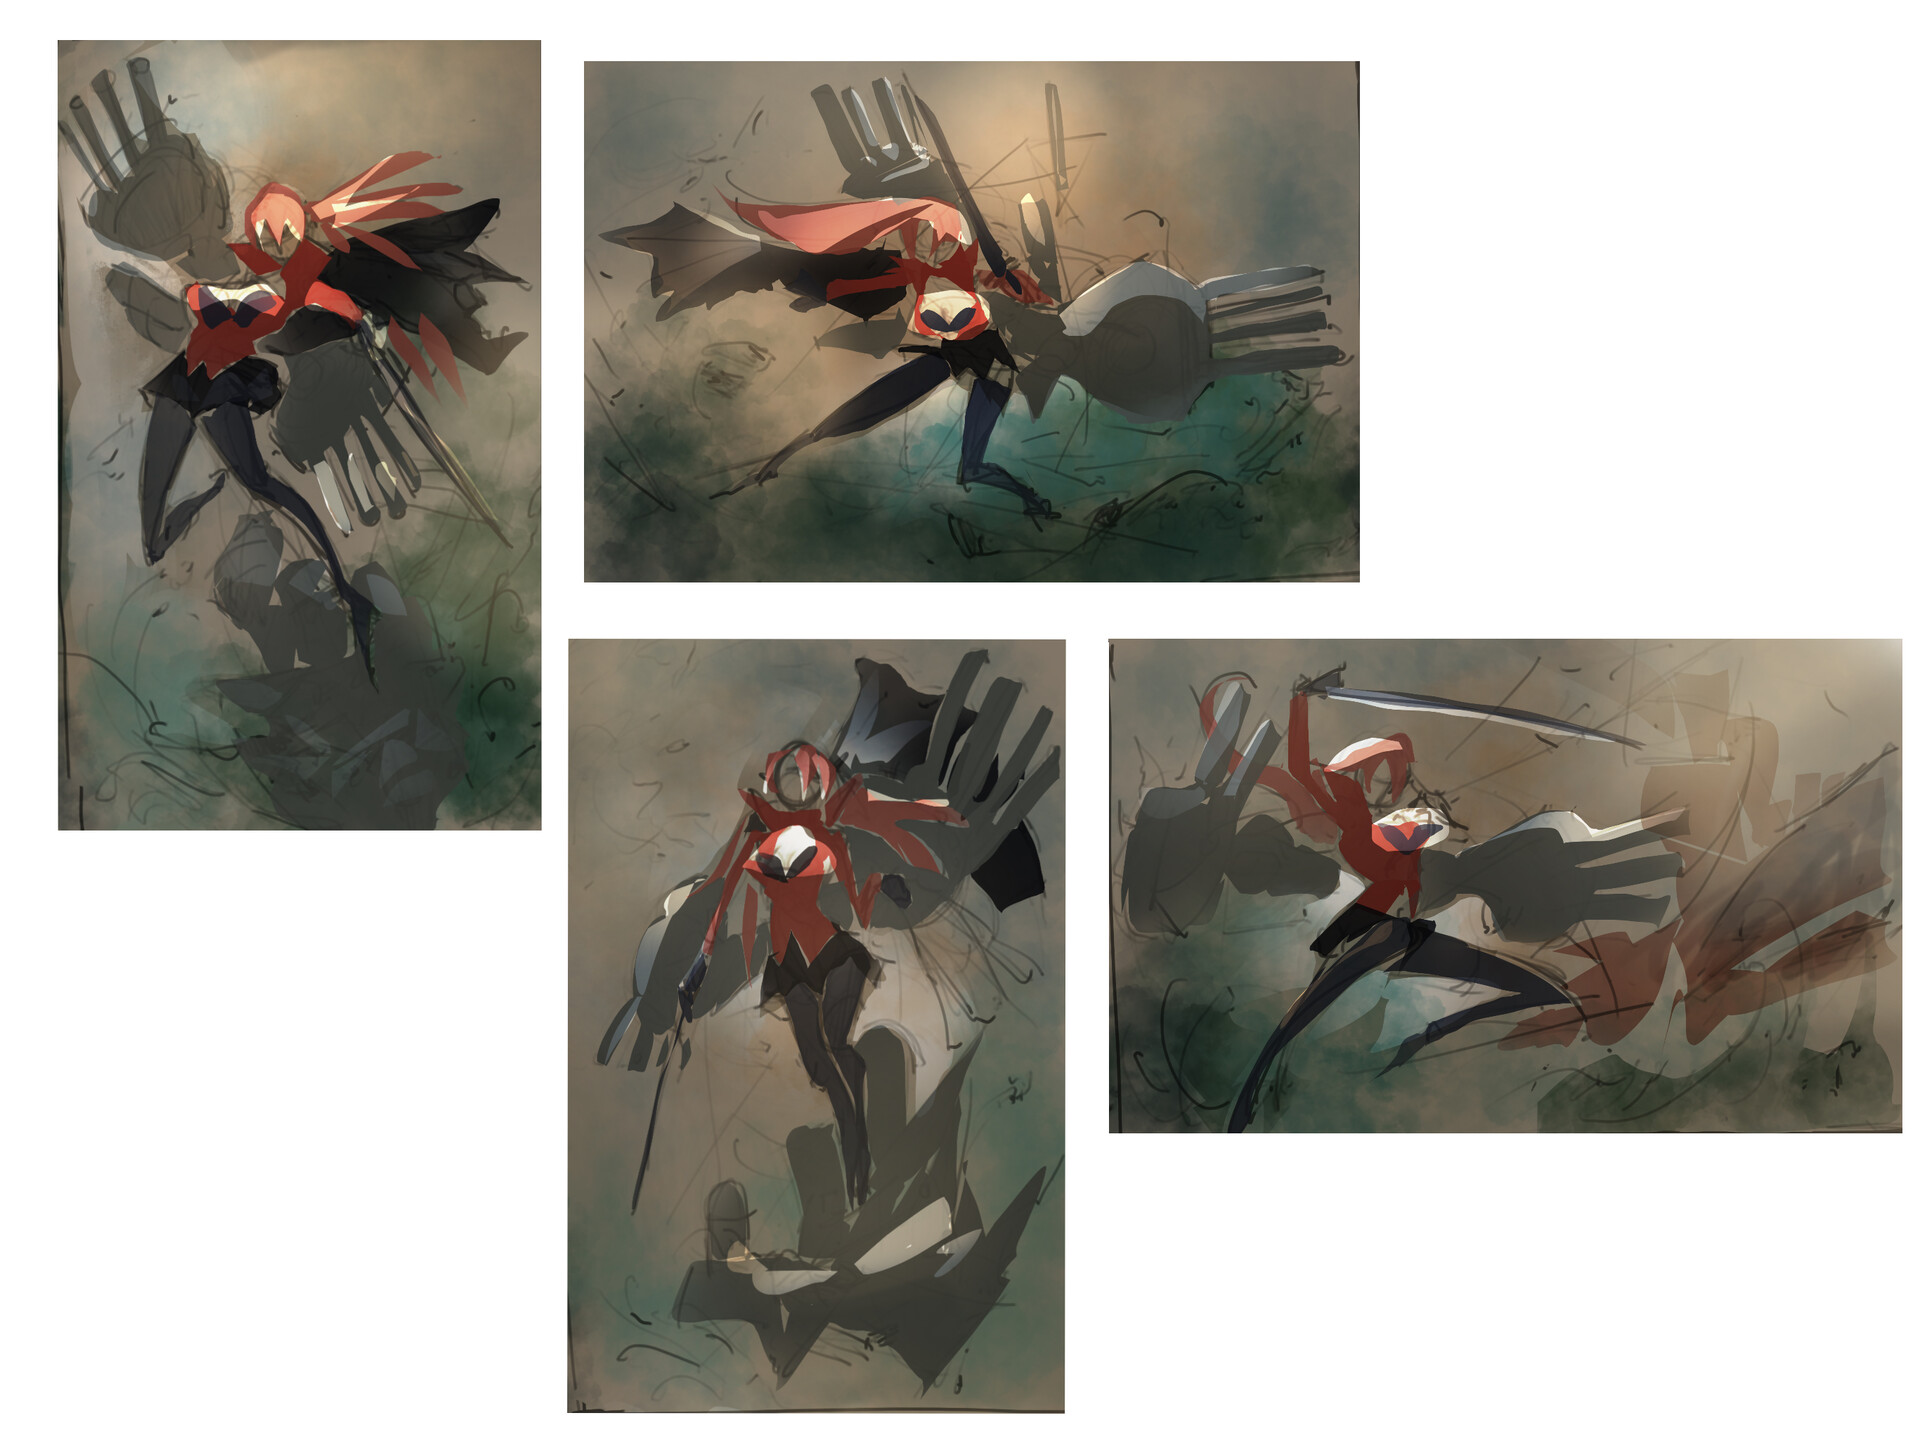 Christian angel duke of york color thumbnails